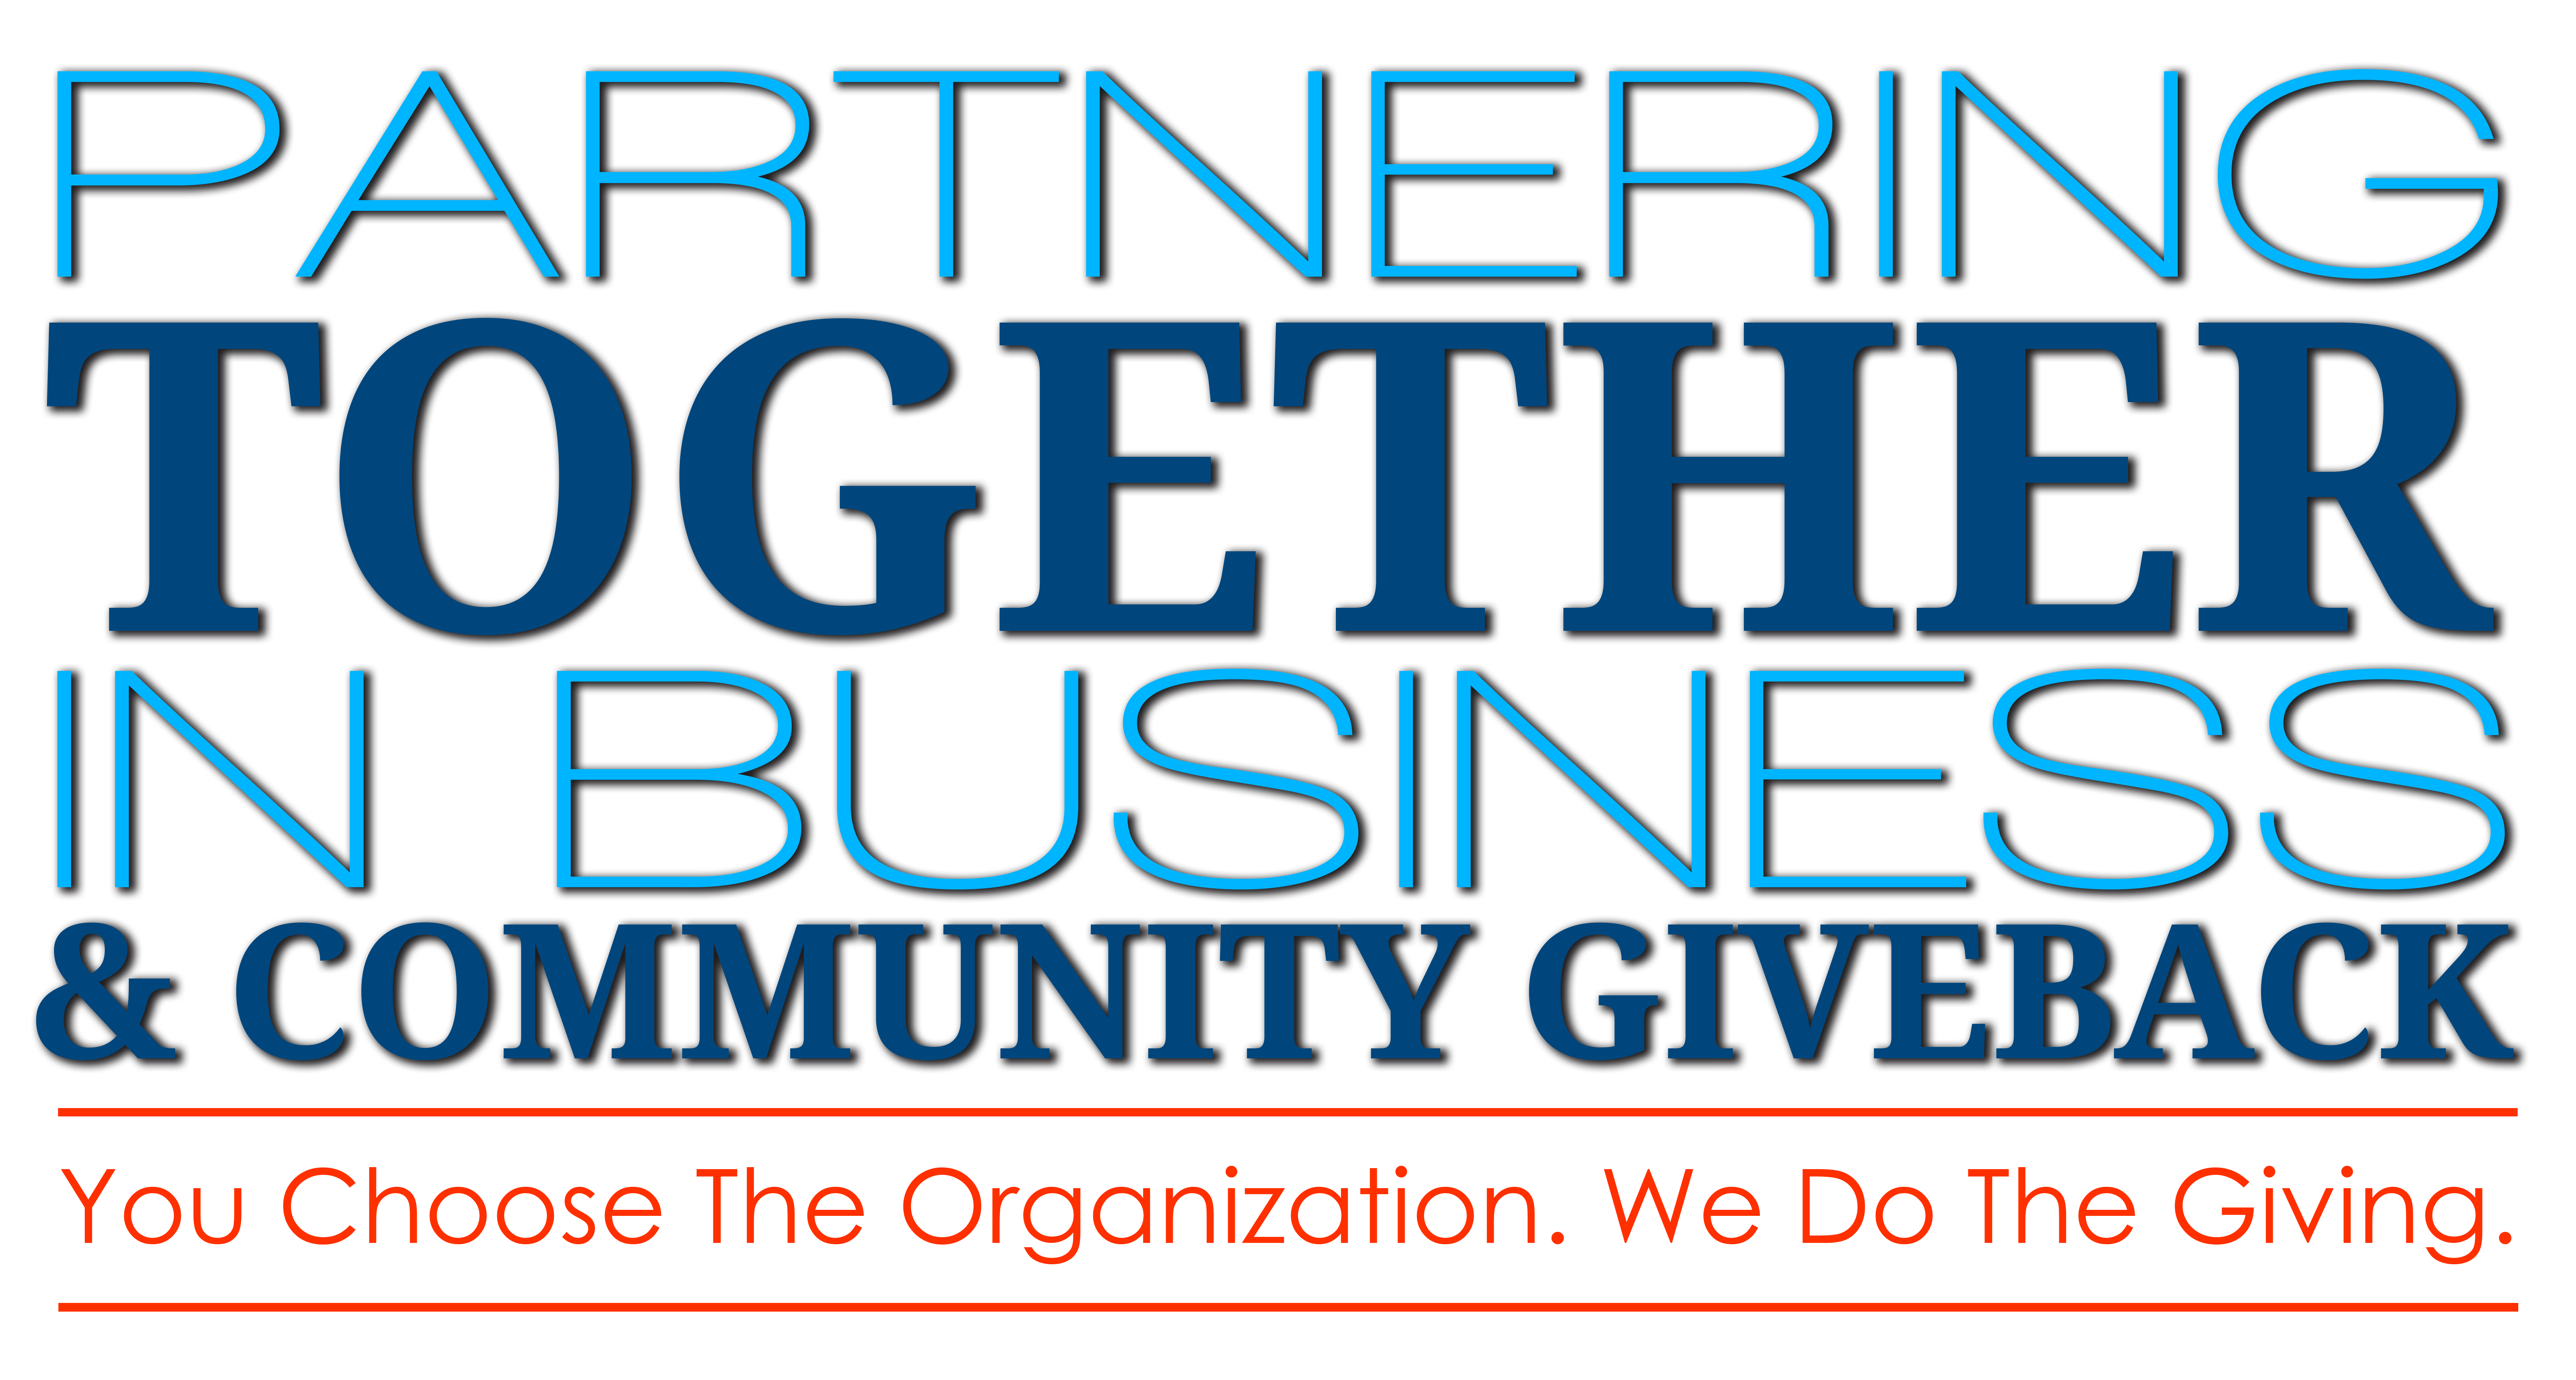 Partnering Together in Business and Giving